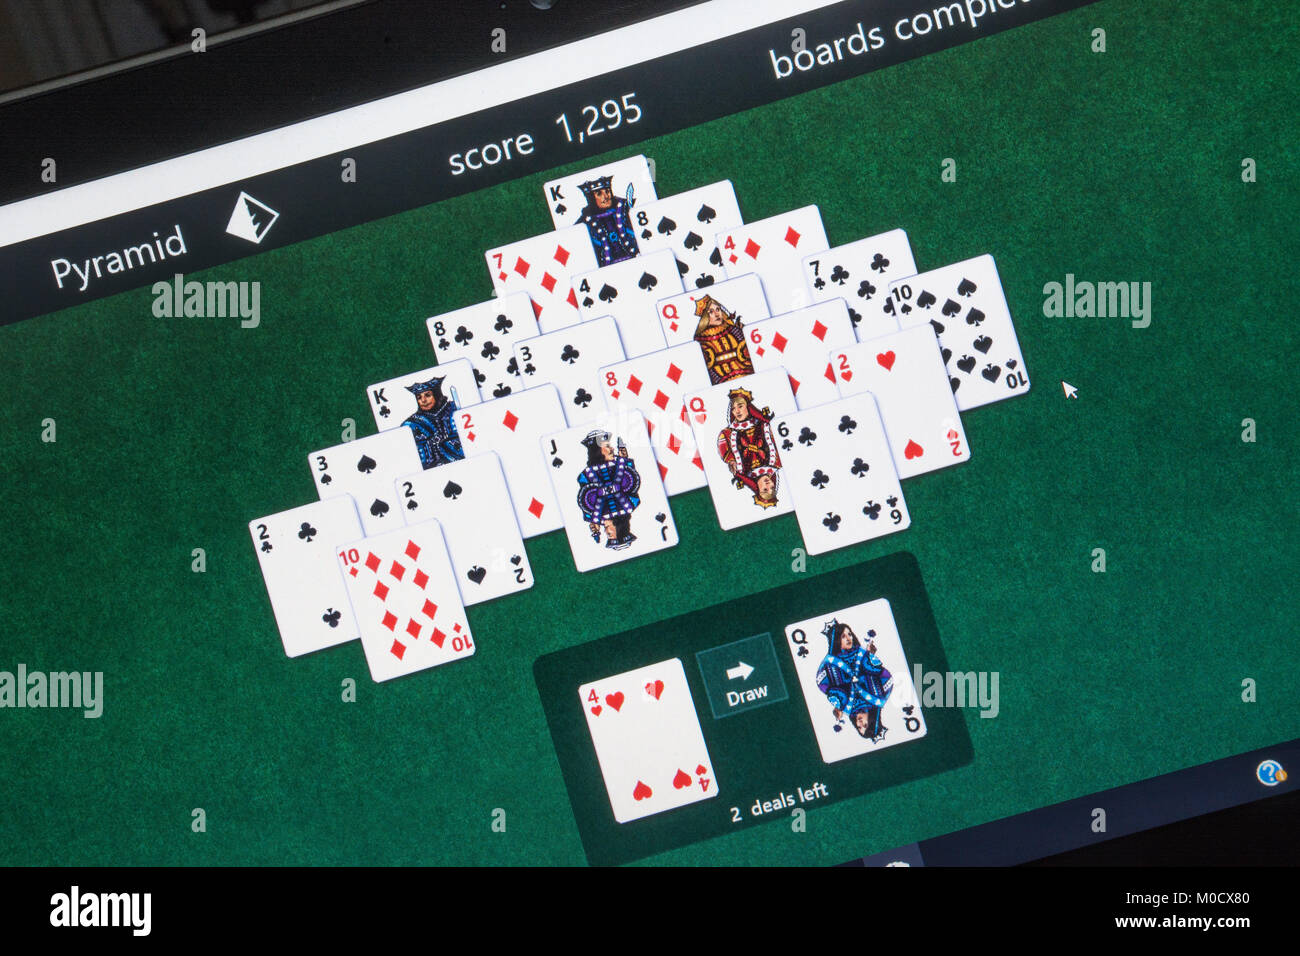 Computer screenshot of Microsoft solitaire game collection - pyramid game in progress - Stock Image